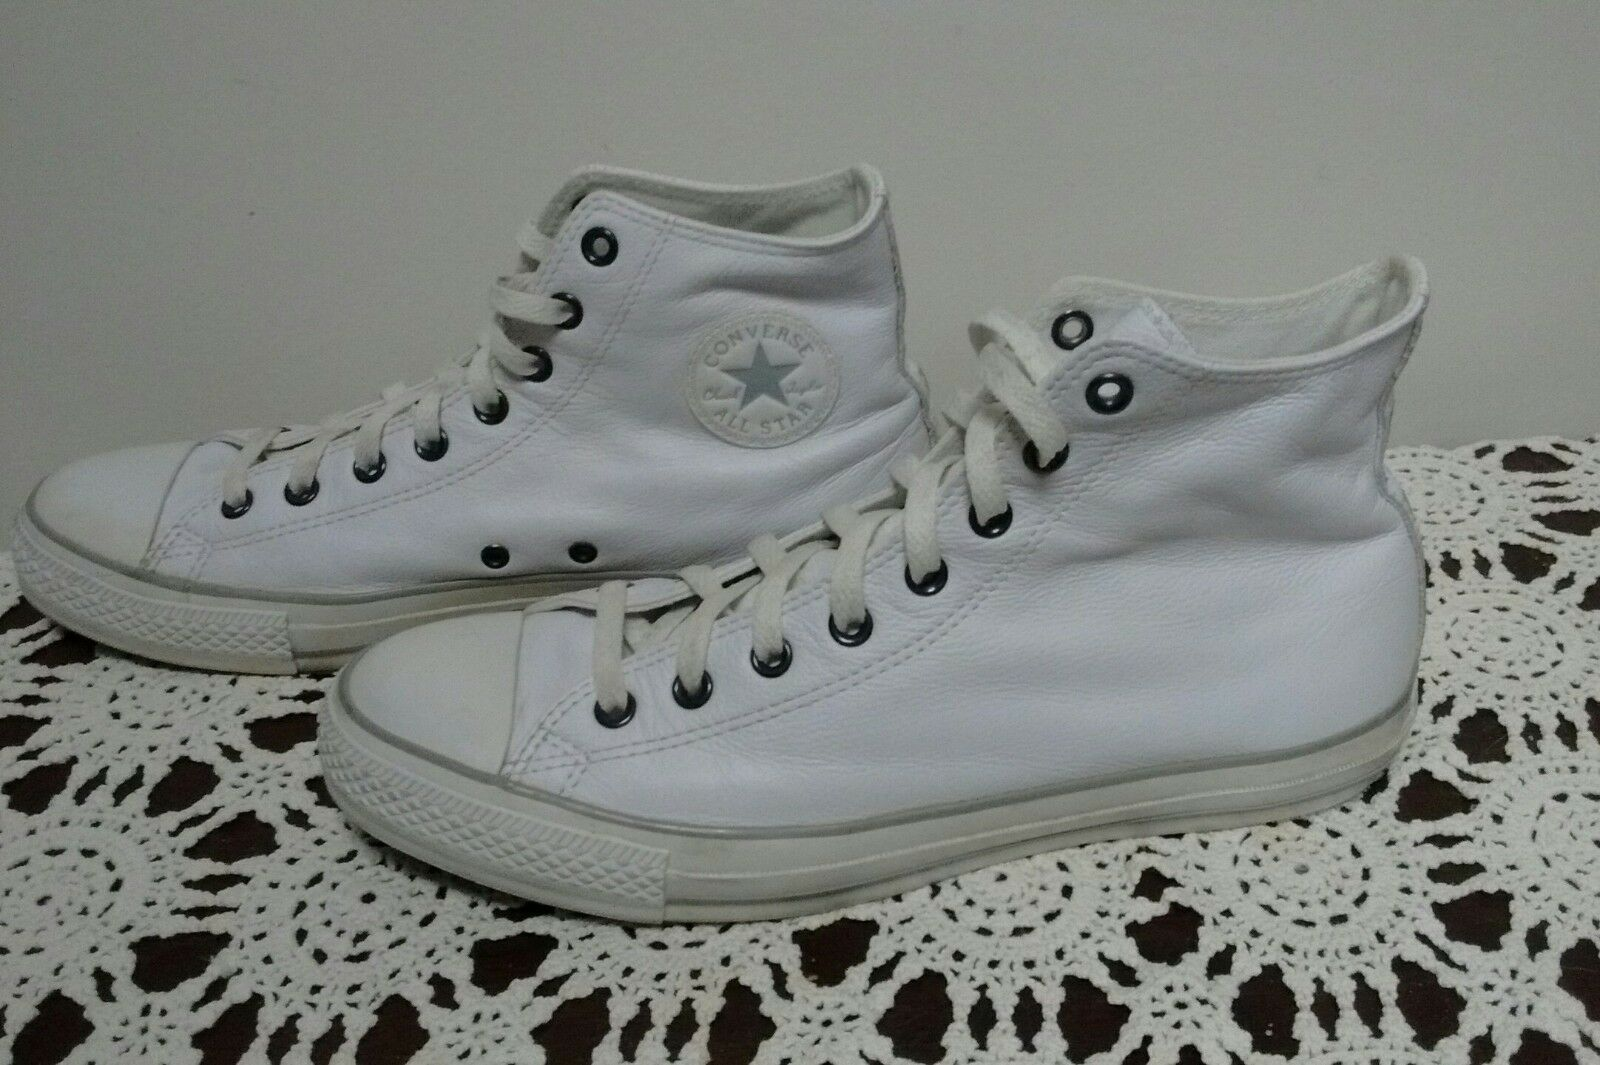 Converse Chuck Taylor All Stars White Leather High Top mens sz 11